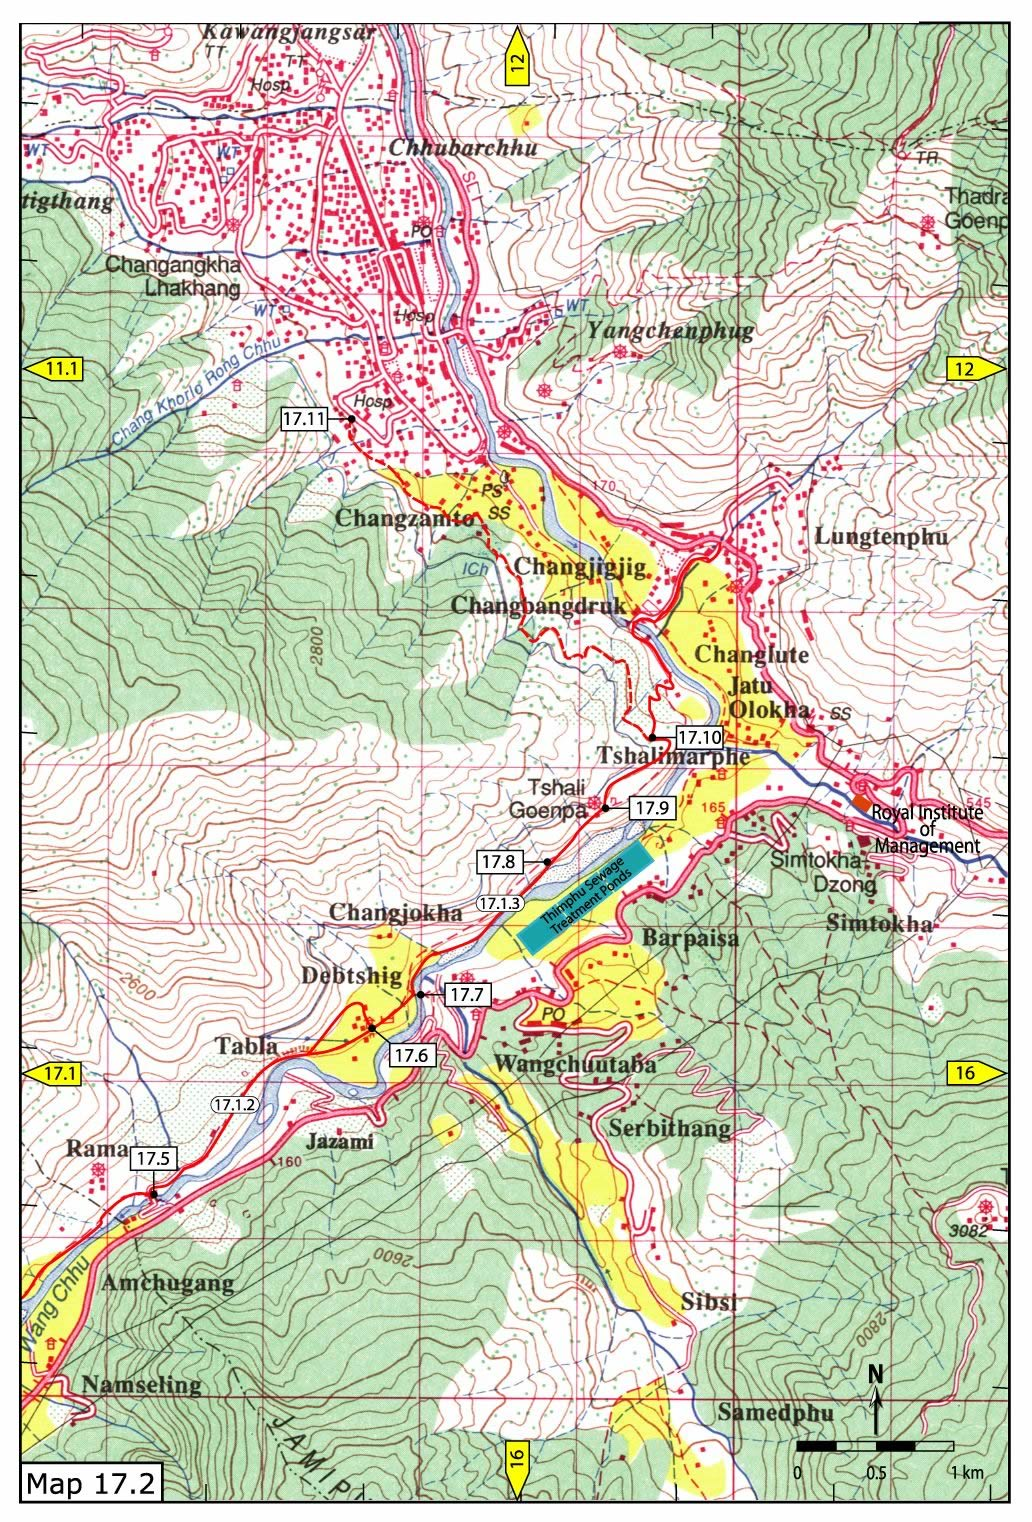 Khasadrapchu to Thimphu trail pt 2 Map Thimphu mappery